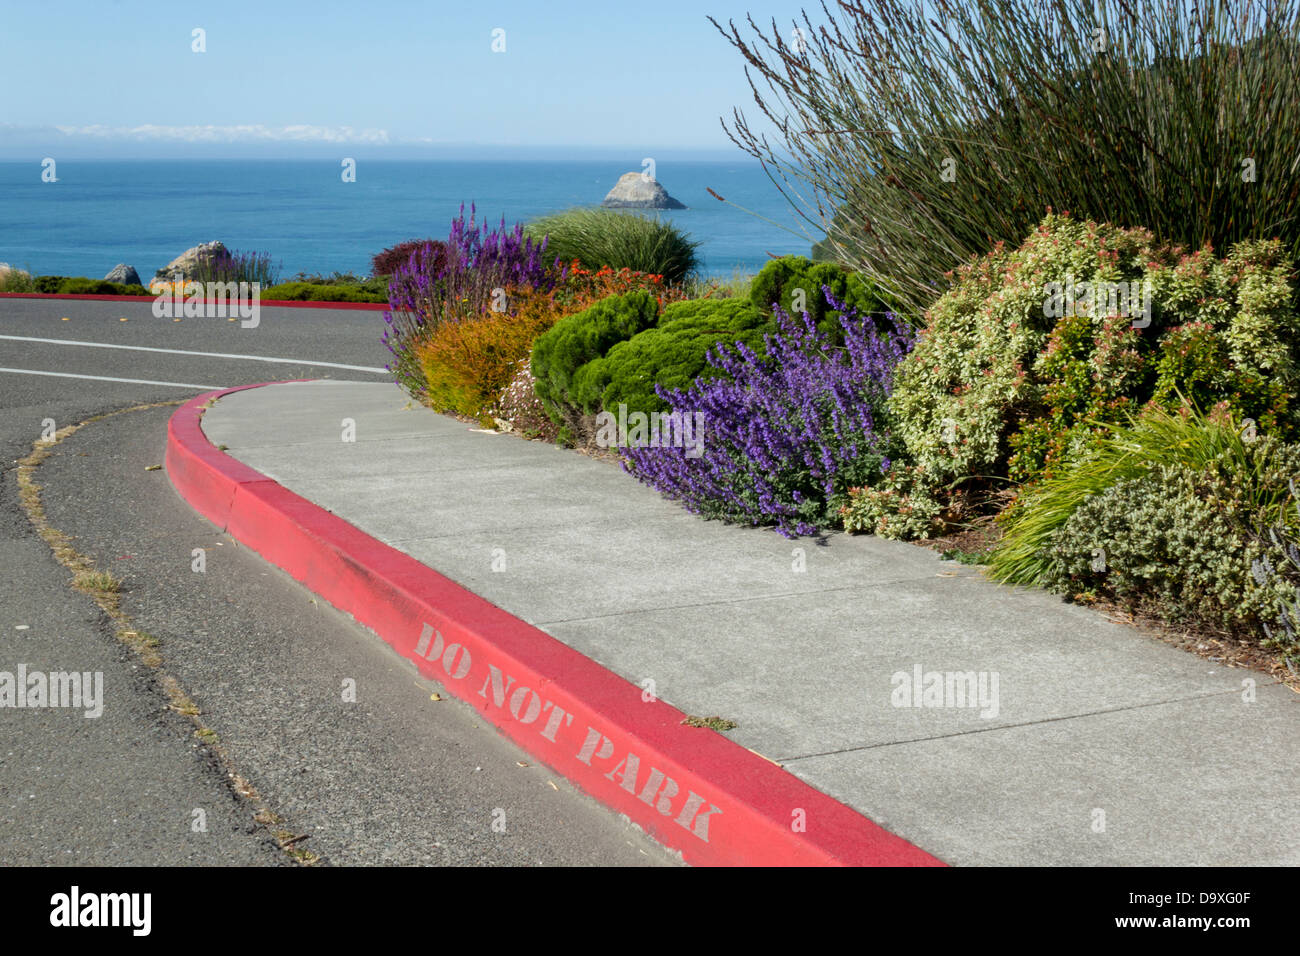 Red curb with no parking sign, fire lane. - Stock Image